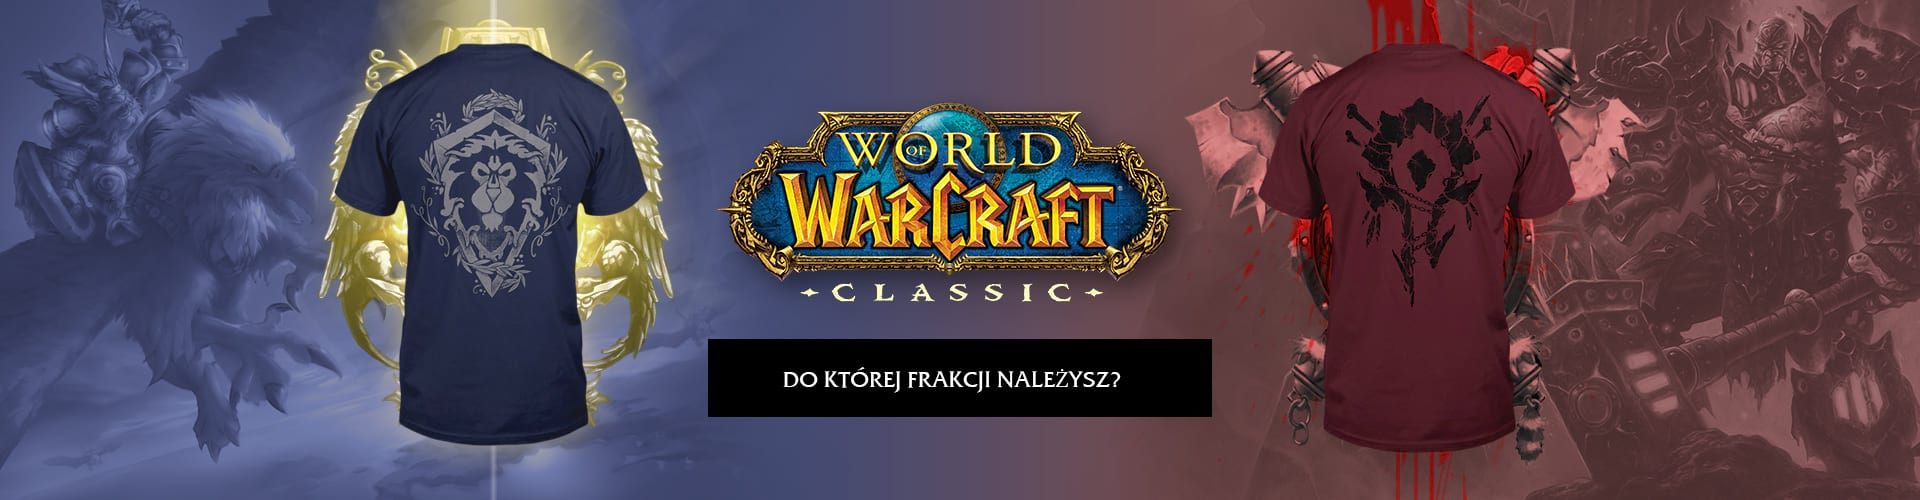 World of Wacraft classic